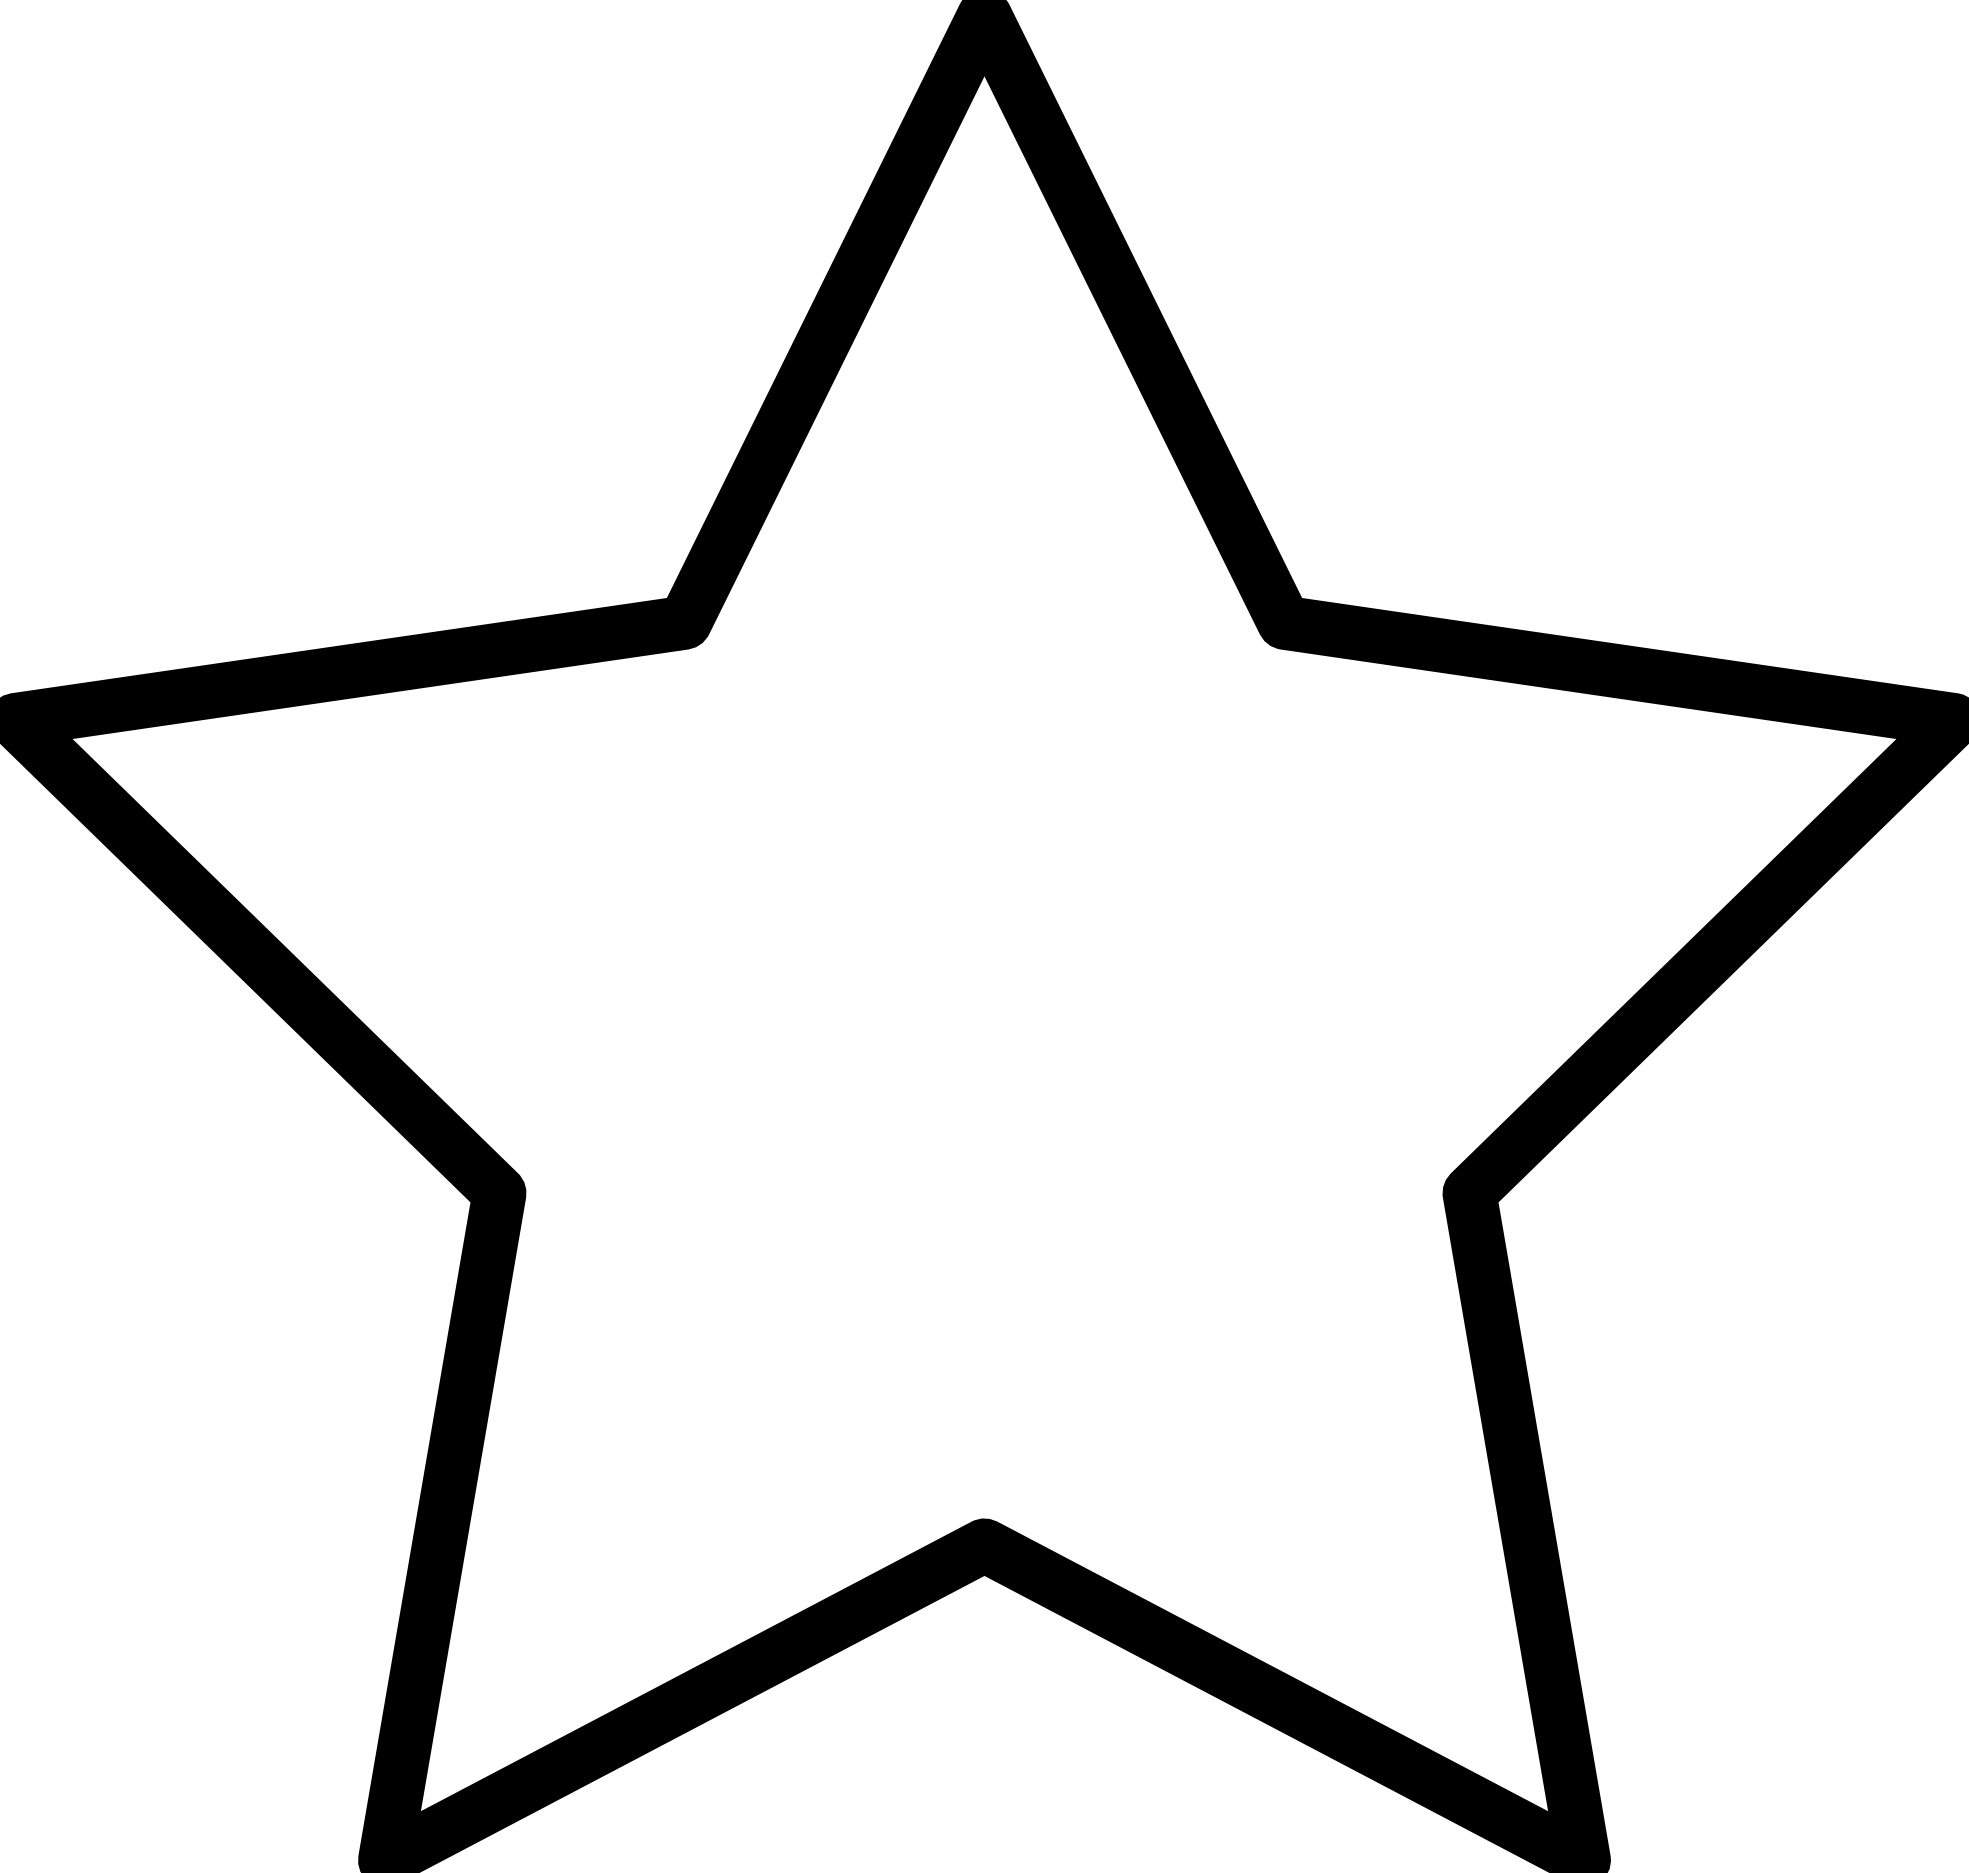 Star clipart black and white free graphic black and white library Star Clip Art Outline Black And White | Clipart Panda - Free Clipart ... graphic black and white library